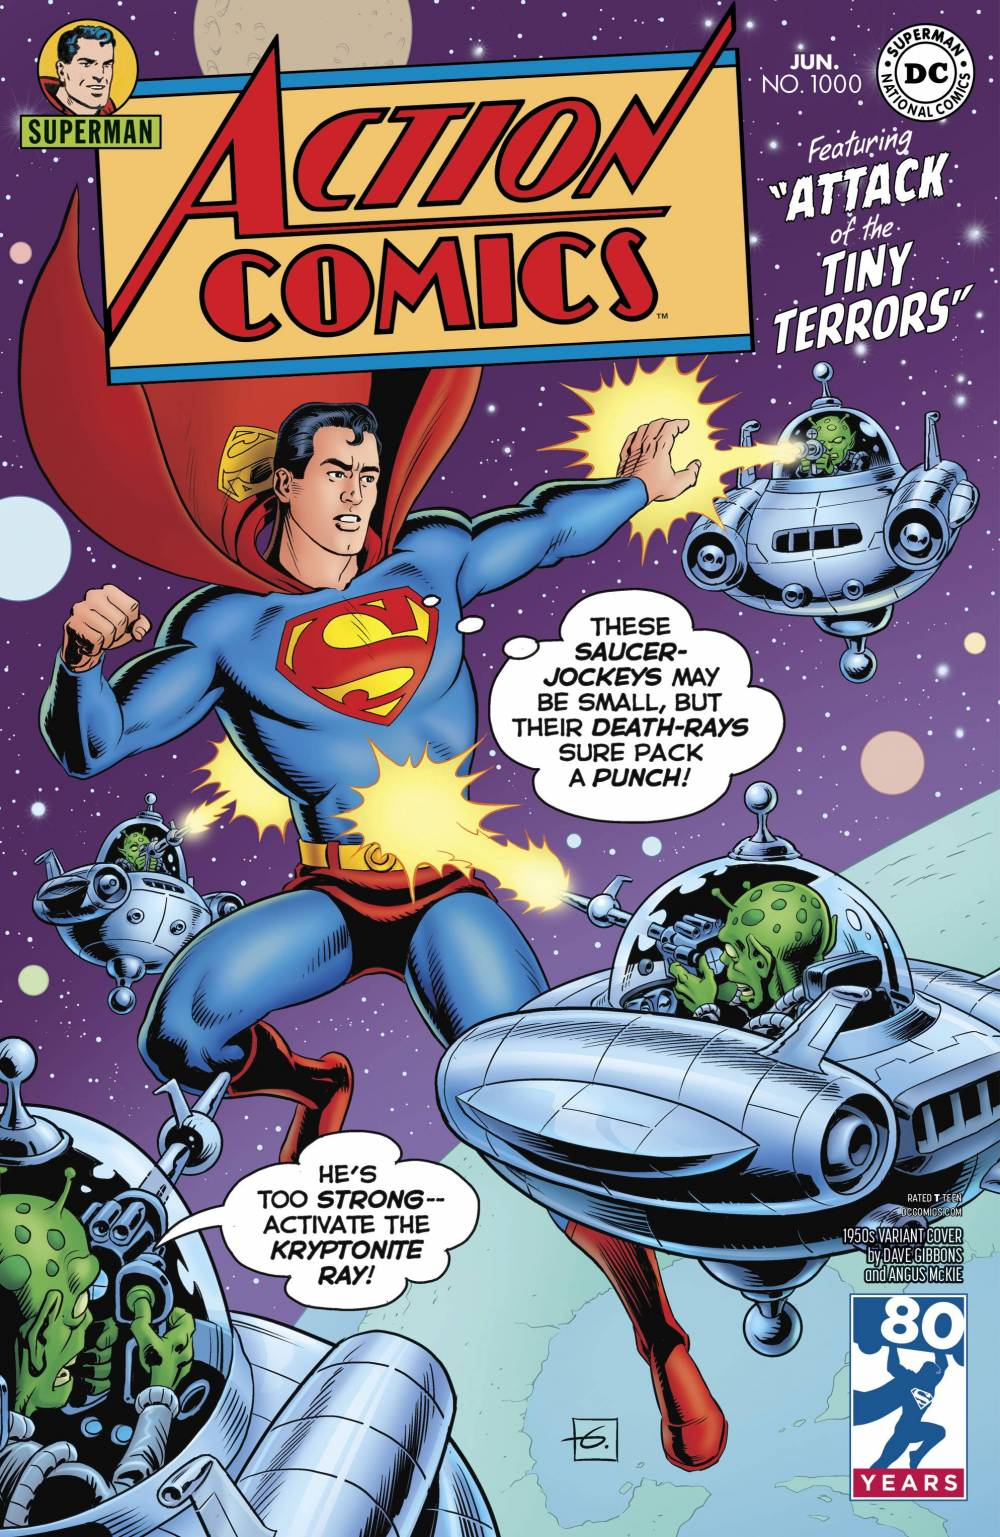 Action Comics 1000 Dave Gibbons 1950s Variant Wow Cool